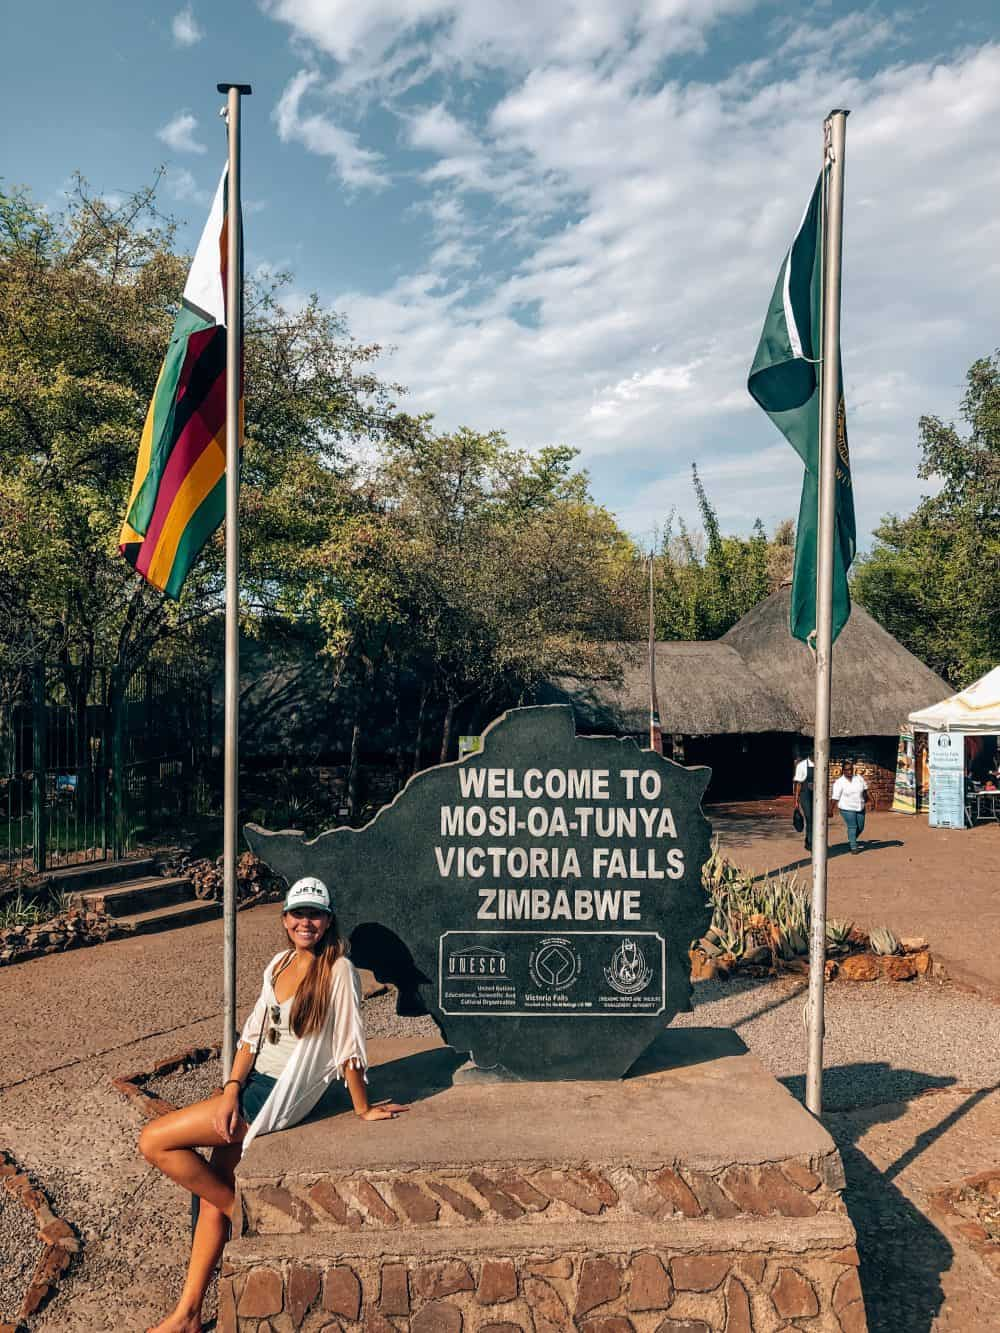 Entrance sign at the Victoria Falls National Park in Zimbabwe